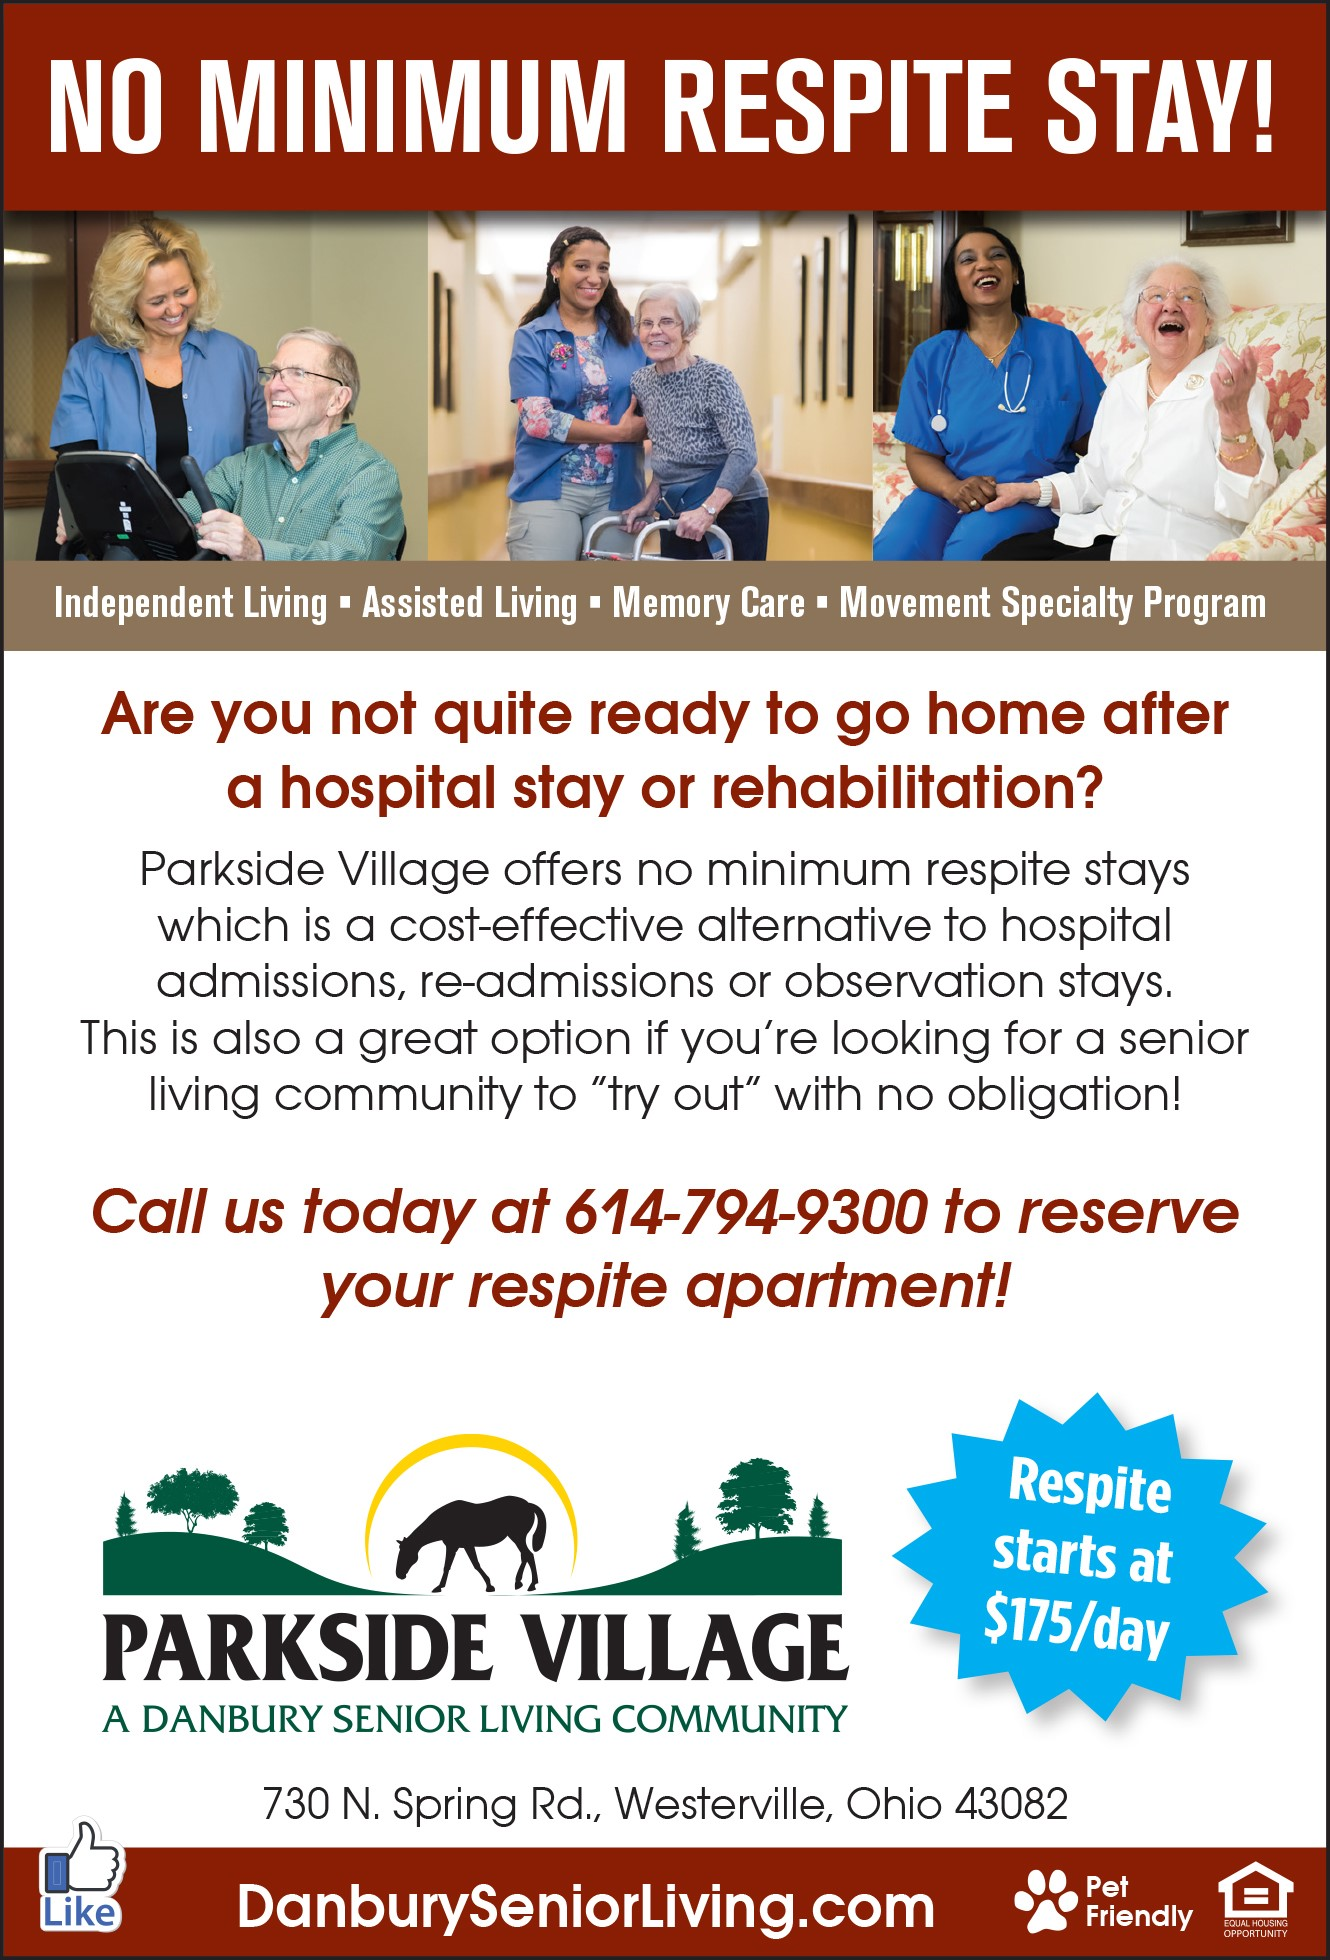 Not quite ready to go home after a hospital stay or rehabilitation? Learn more about Danbury Senior Living Parkside Village no minimum respite stays.